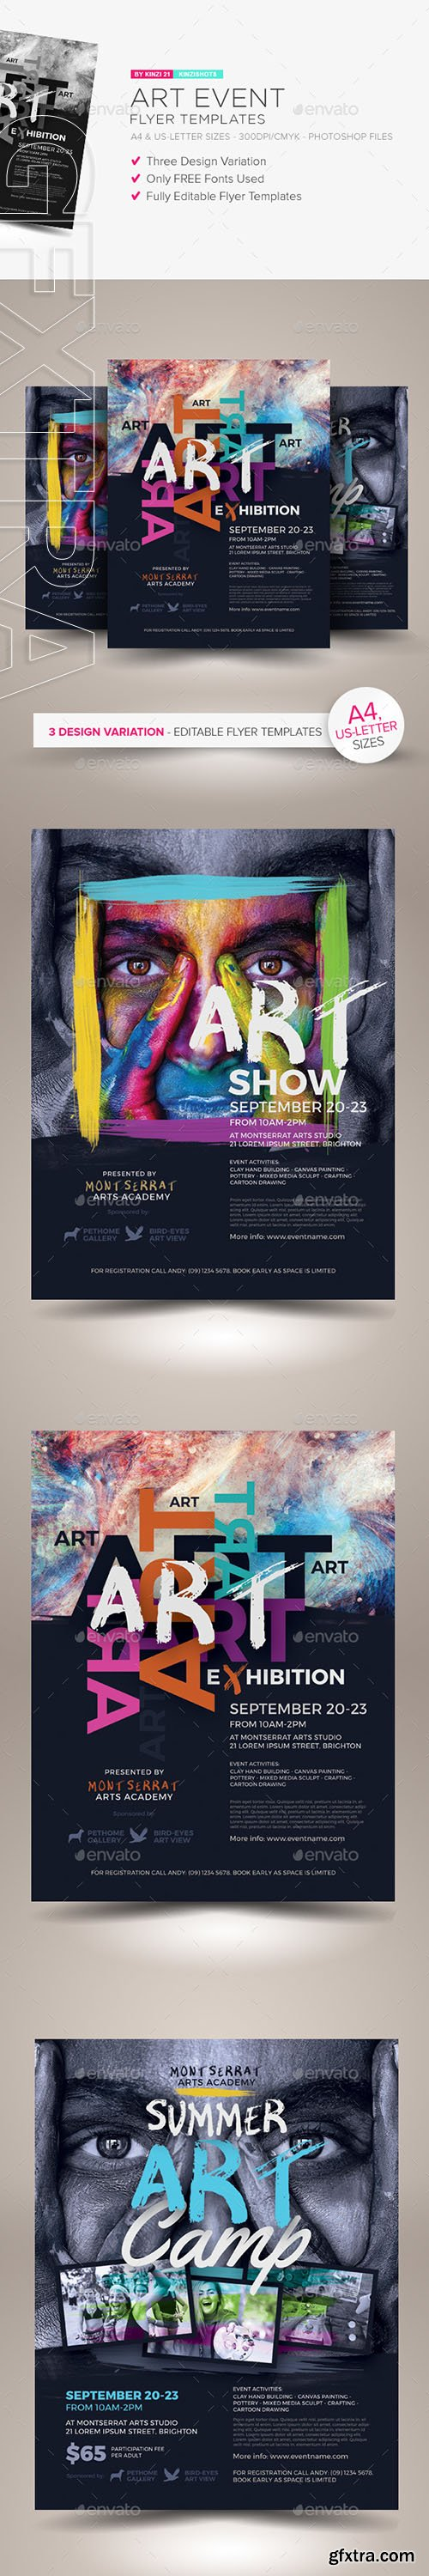 Art Event Flyer Template Topsimages